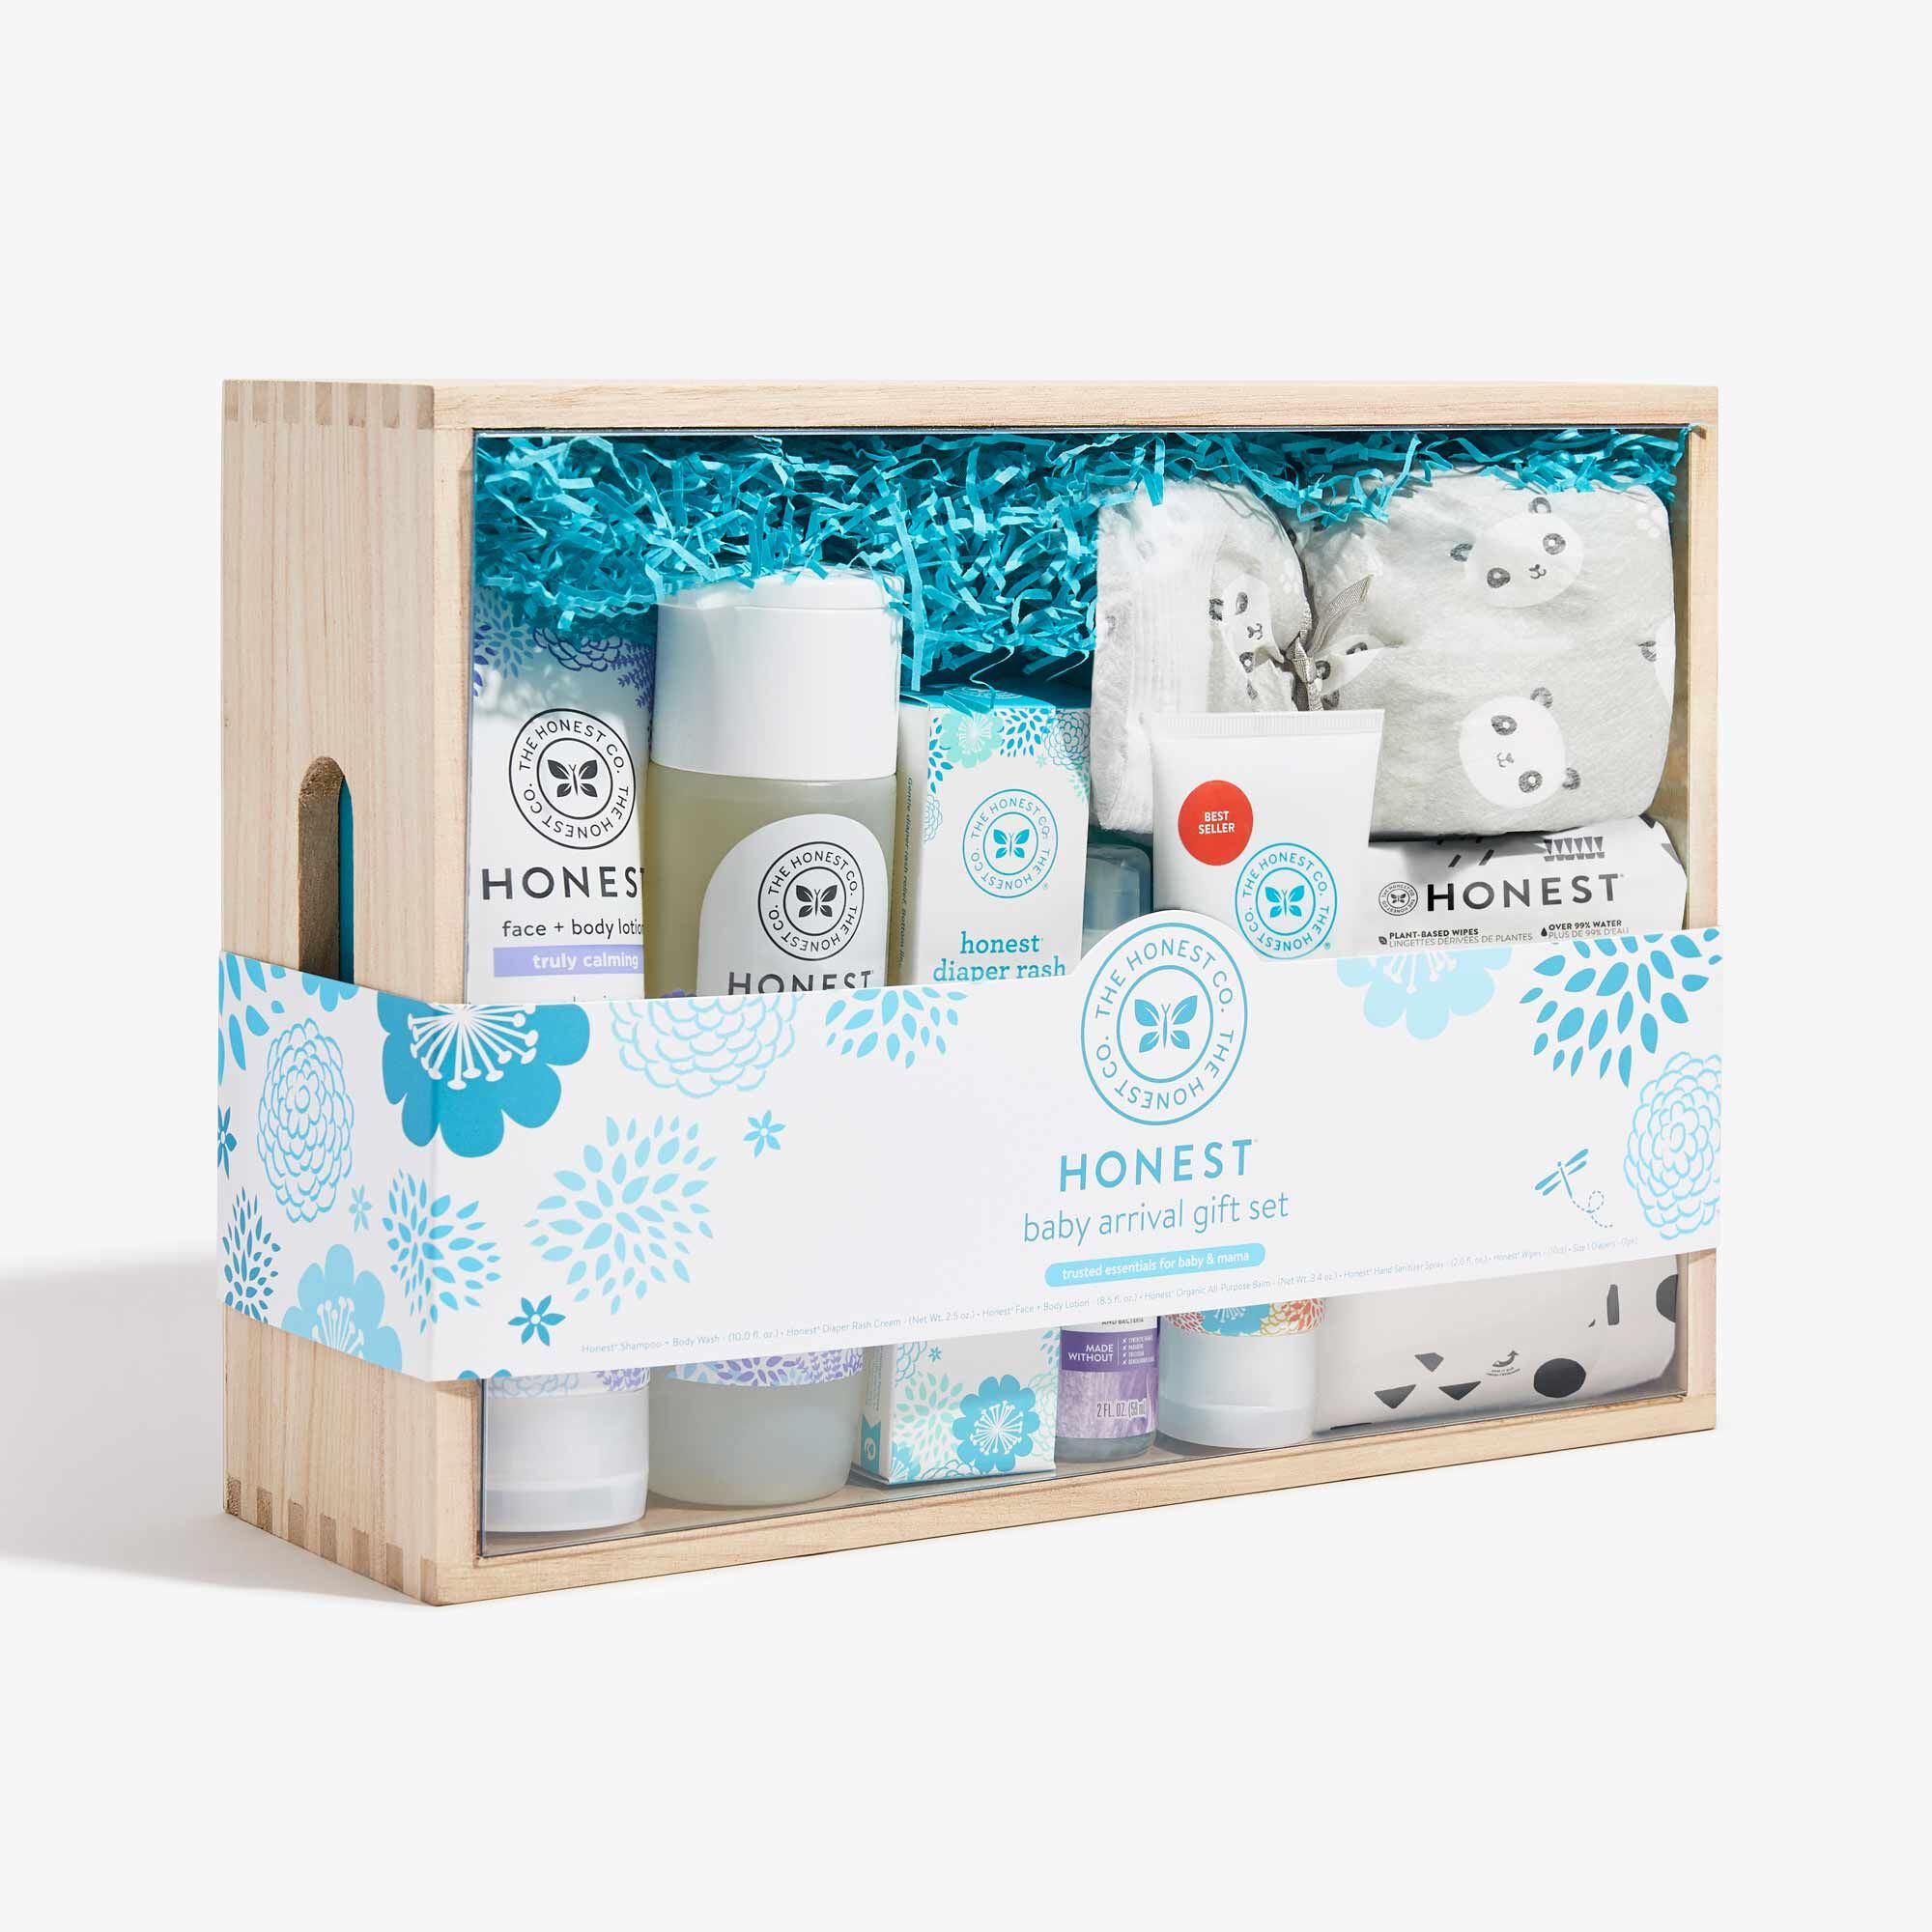 Baby Arrival Gift Set, Lavender Hand Sani Spray